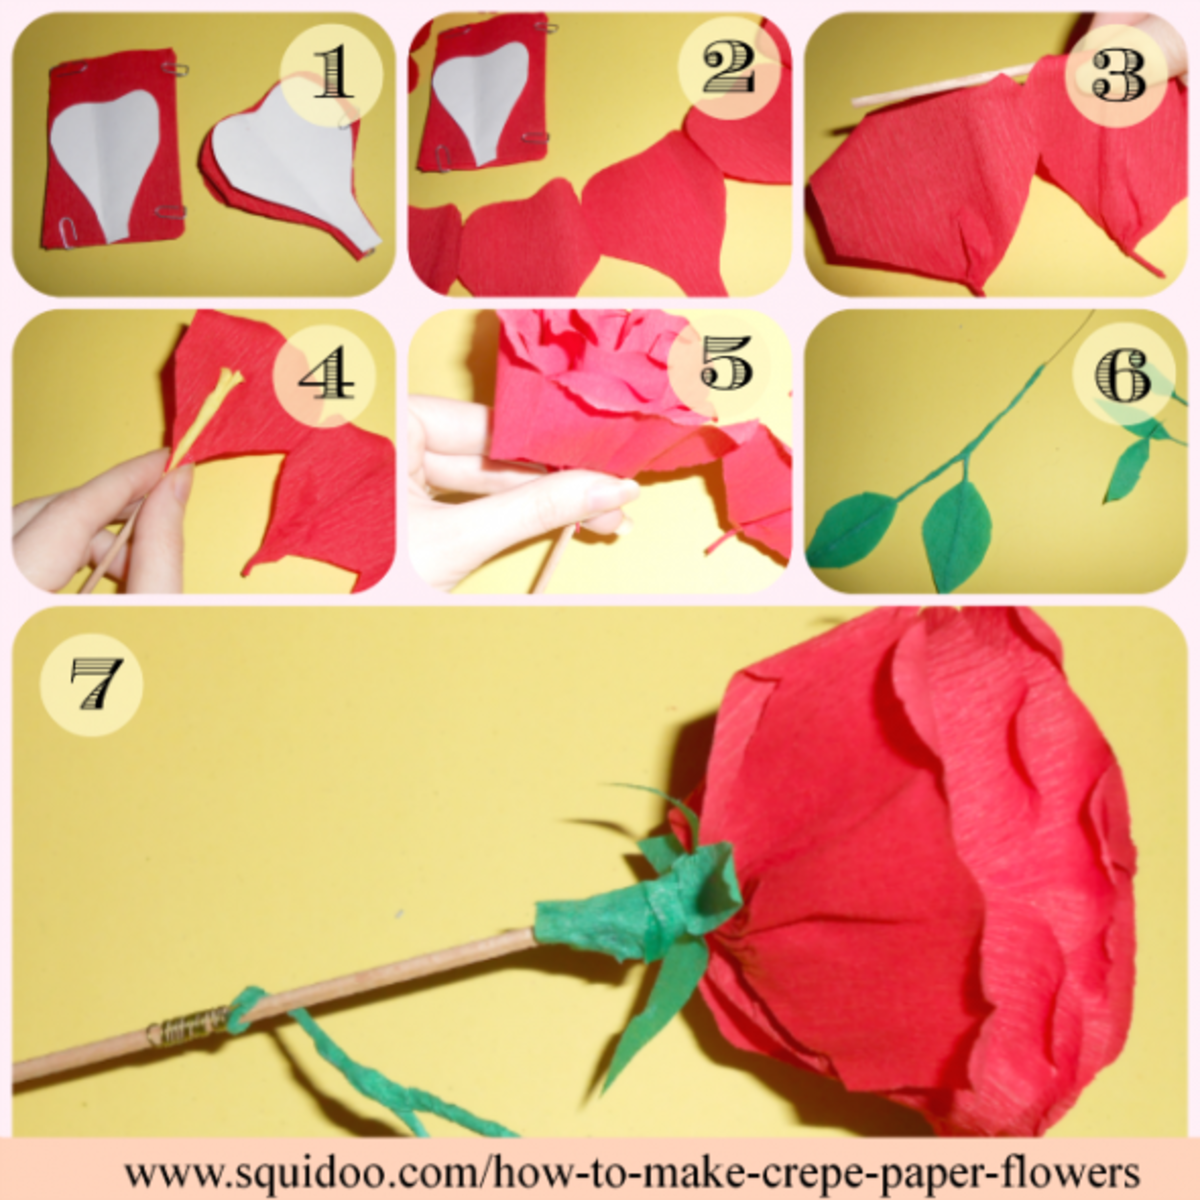 how to make paper man step by step